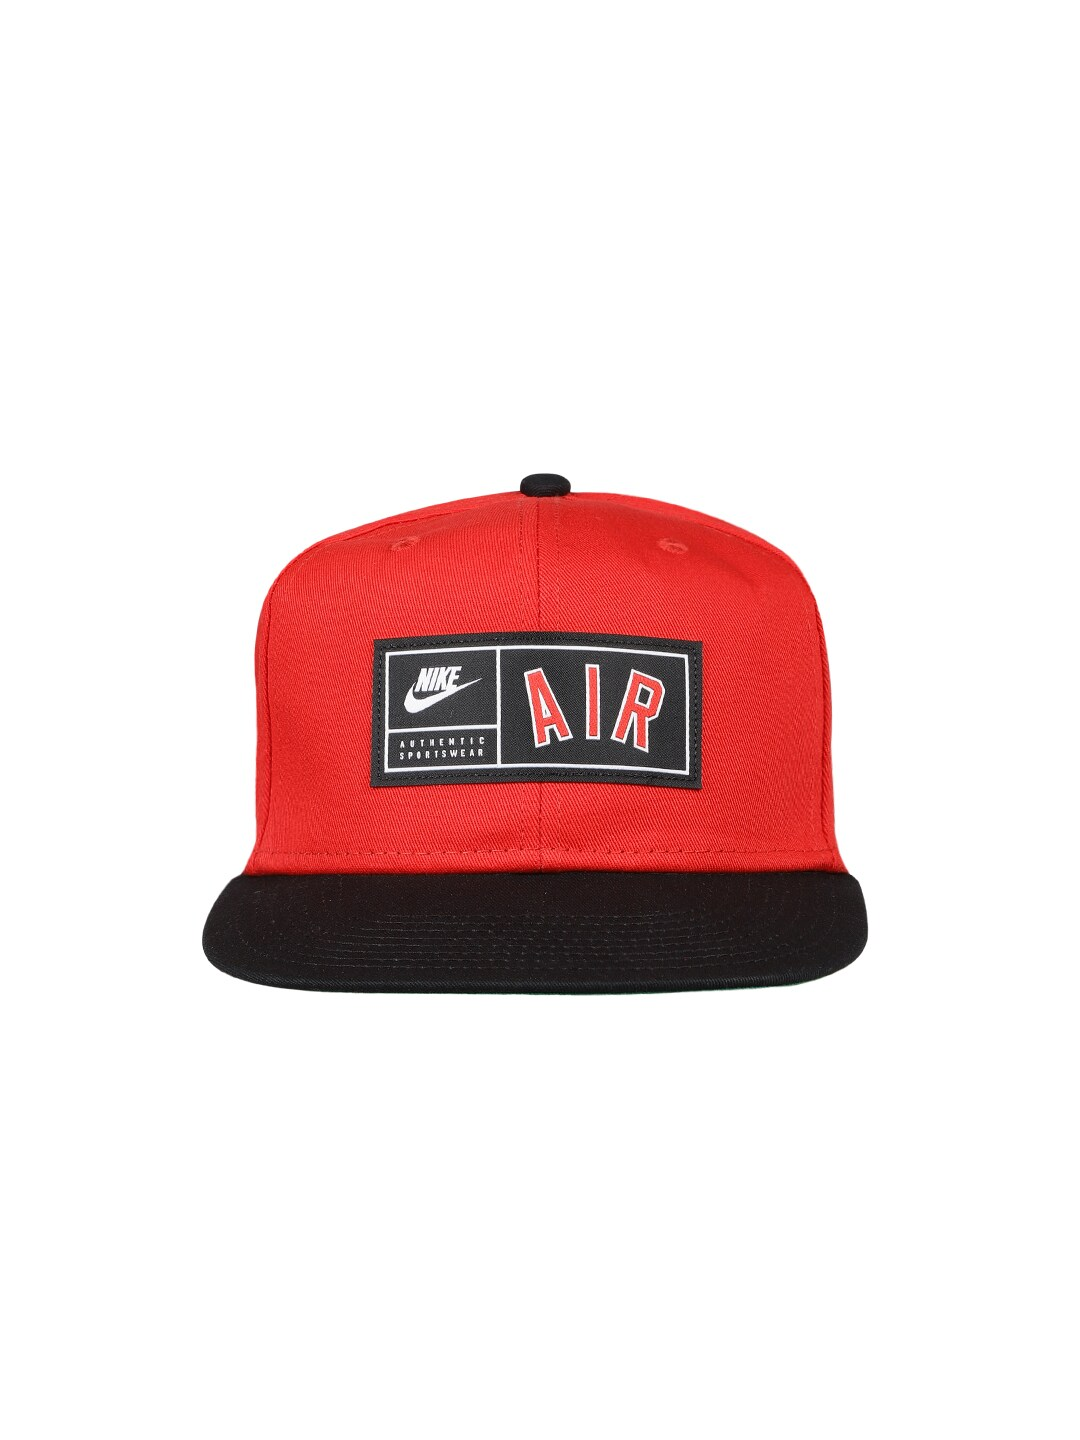 a27d19972aad Nike Cap - Buy Nike Caps for Men   Women Online in India